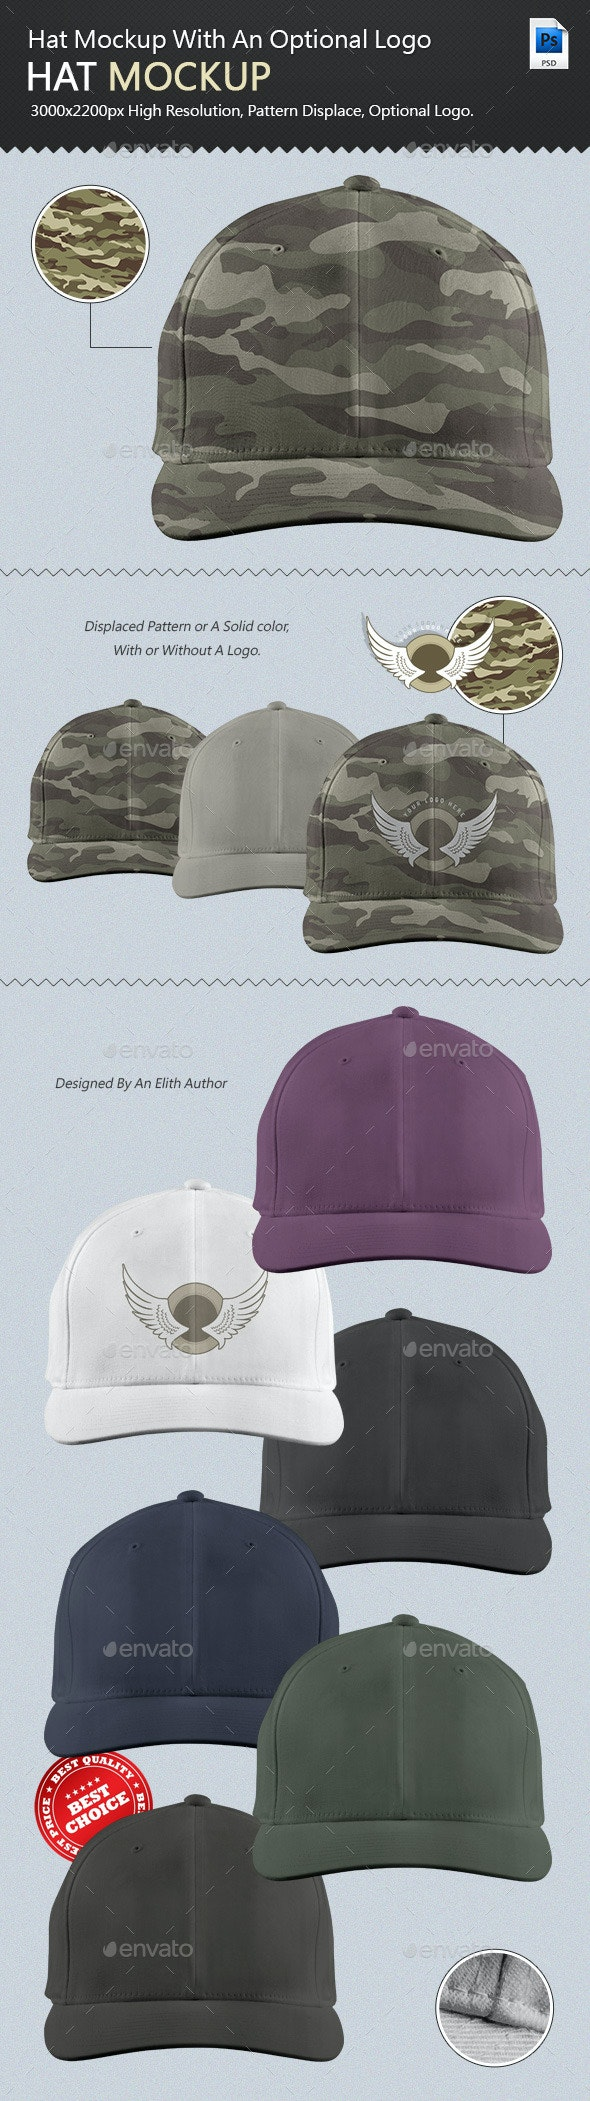 Professional Hat Mock-up - Miscellaneous Apparel